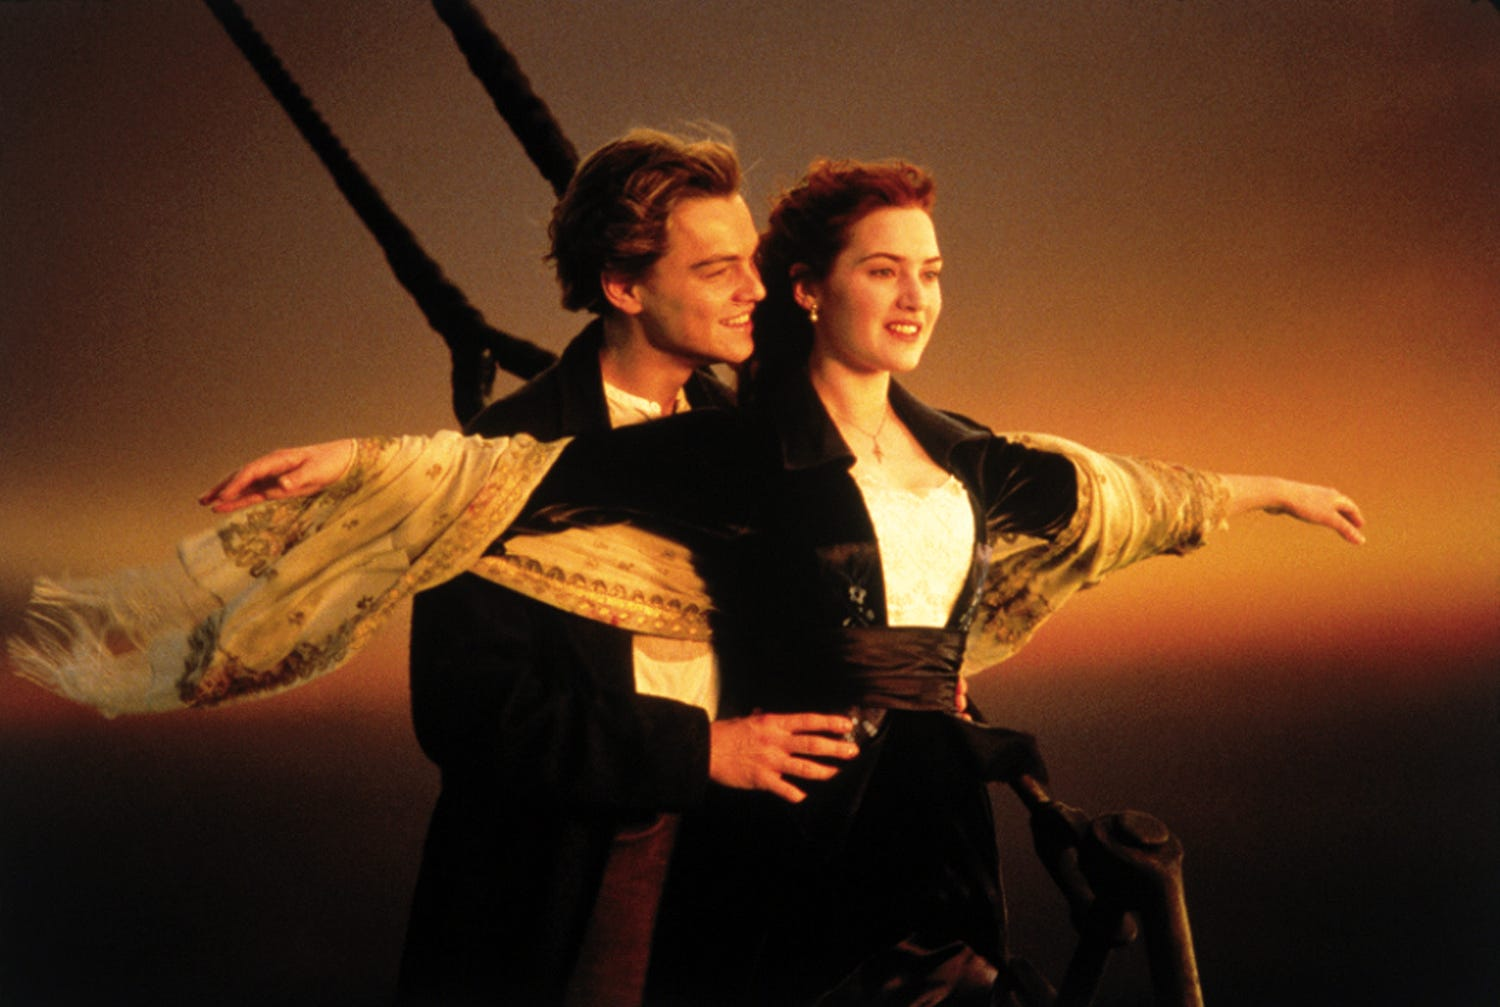 Titanic supporting film actor still gets paid for filming 20 years ago 85